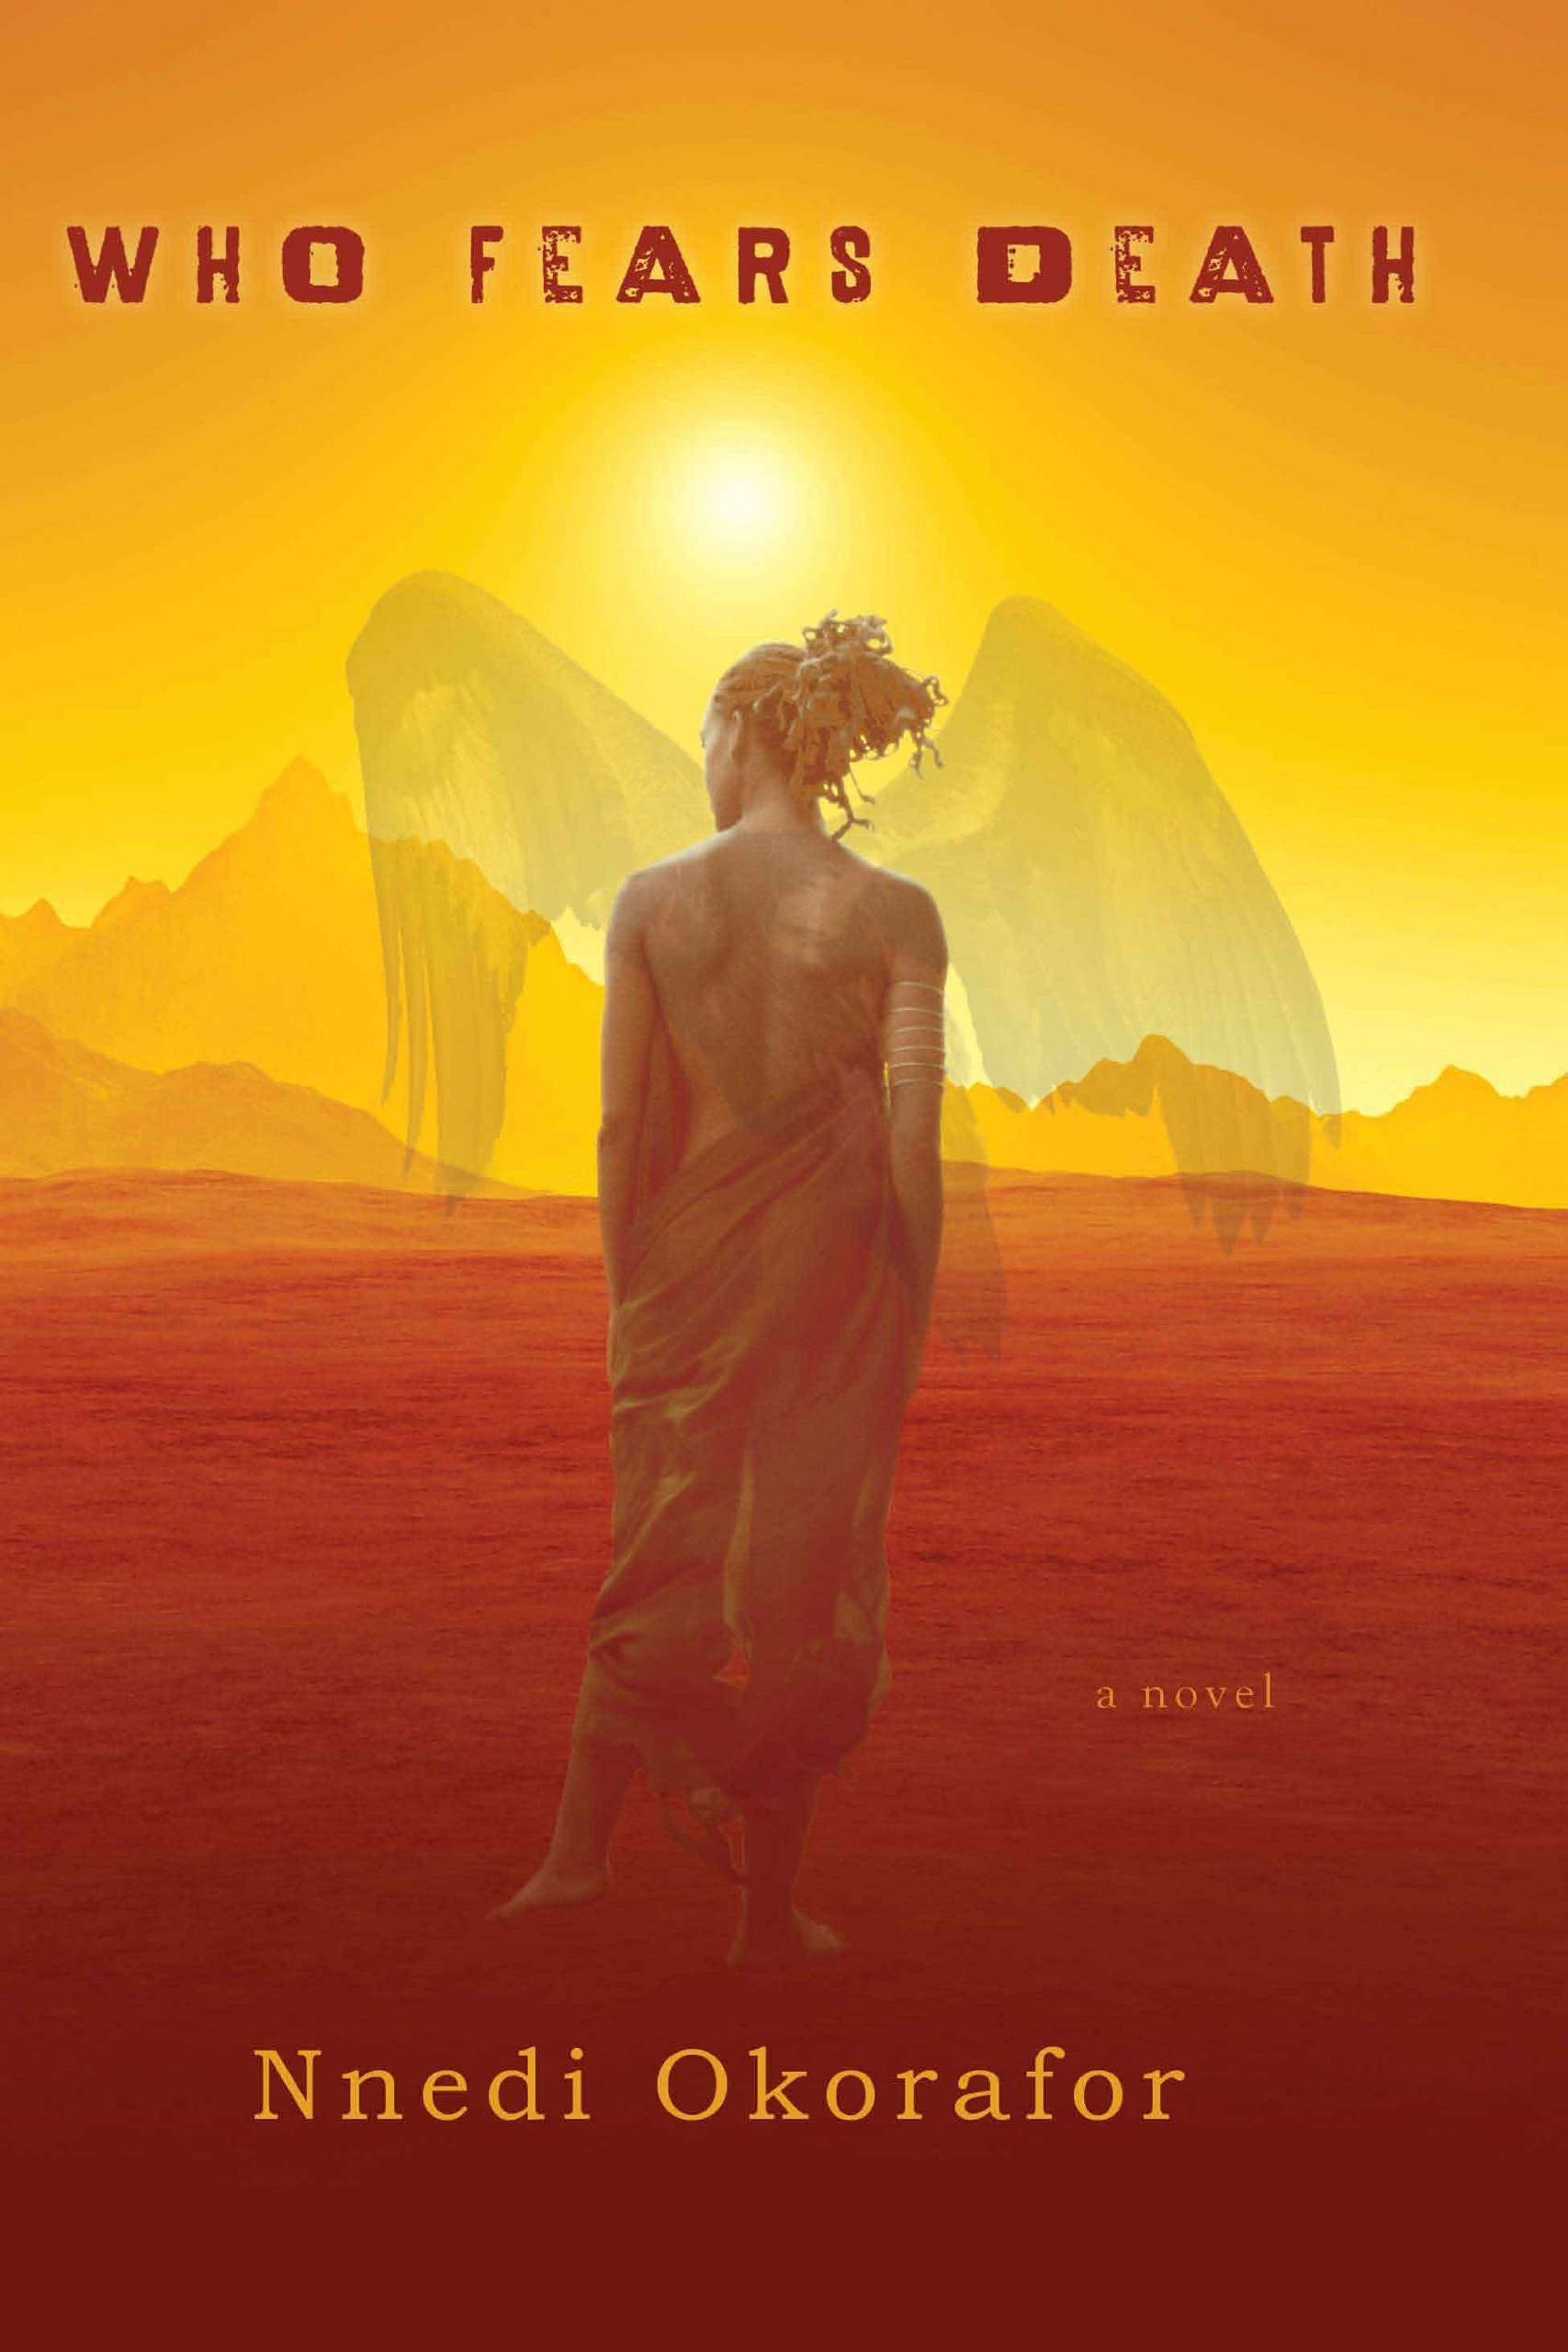 13 Sci-Fi & Fantasy Books By POC That Could Be The Next 'Game Of